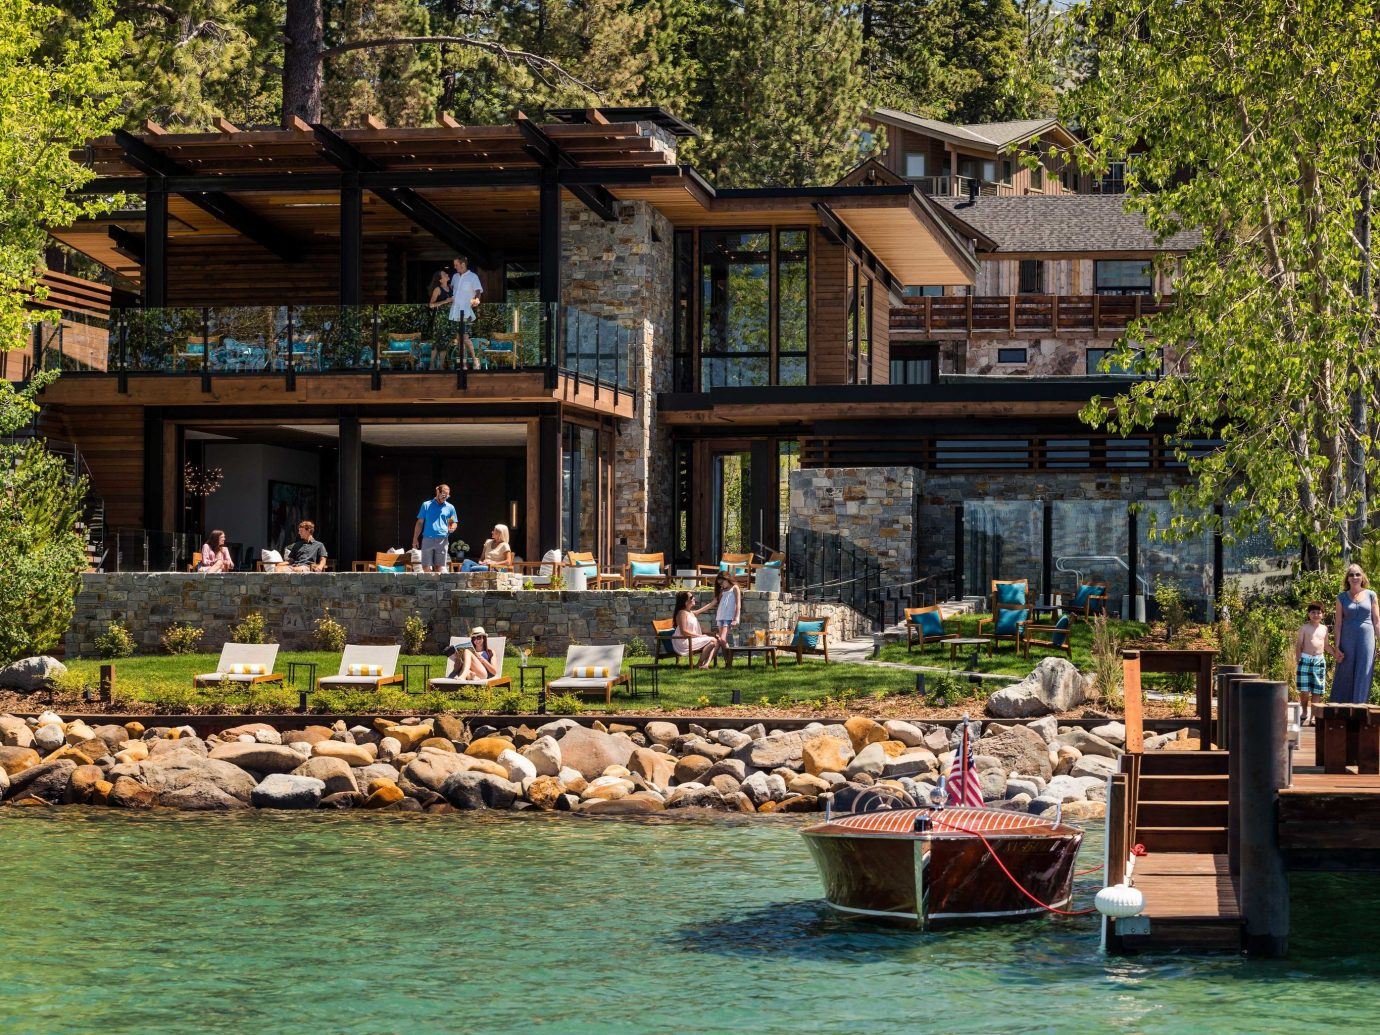 Lake Club water cottage tree house reflection home plant real estate leisure Villa outdoor structure landscape estate log cabin boathouse Resort